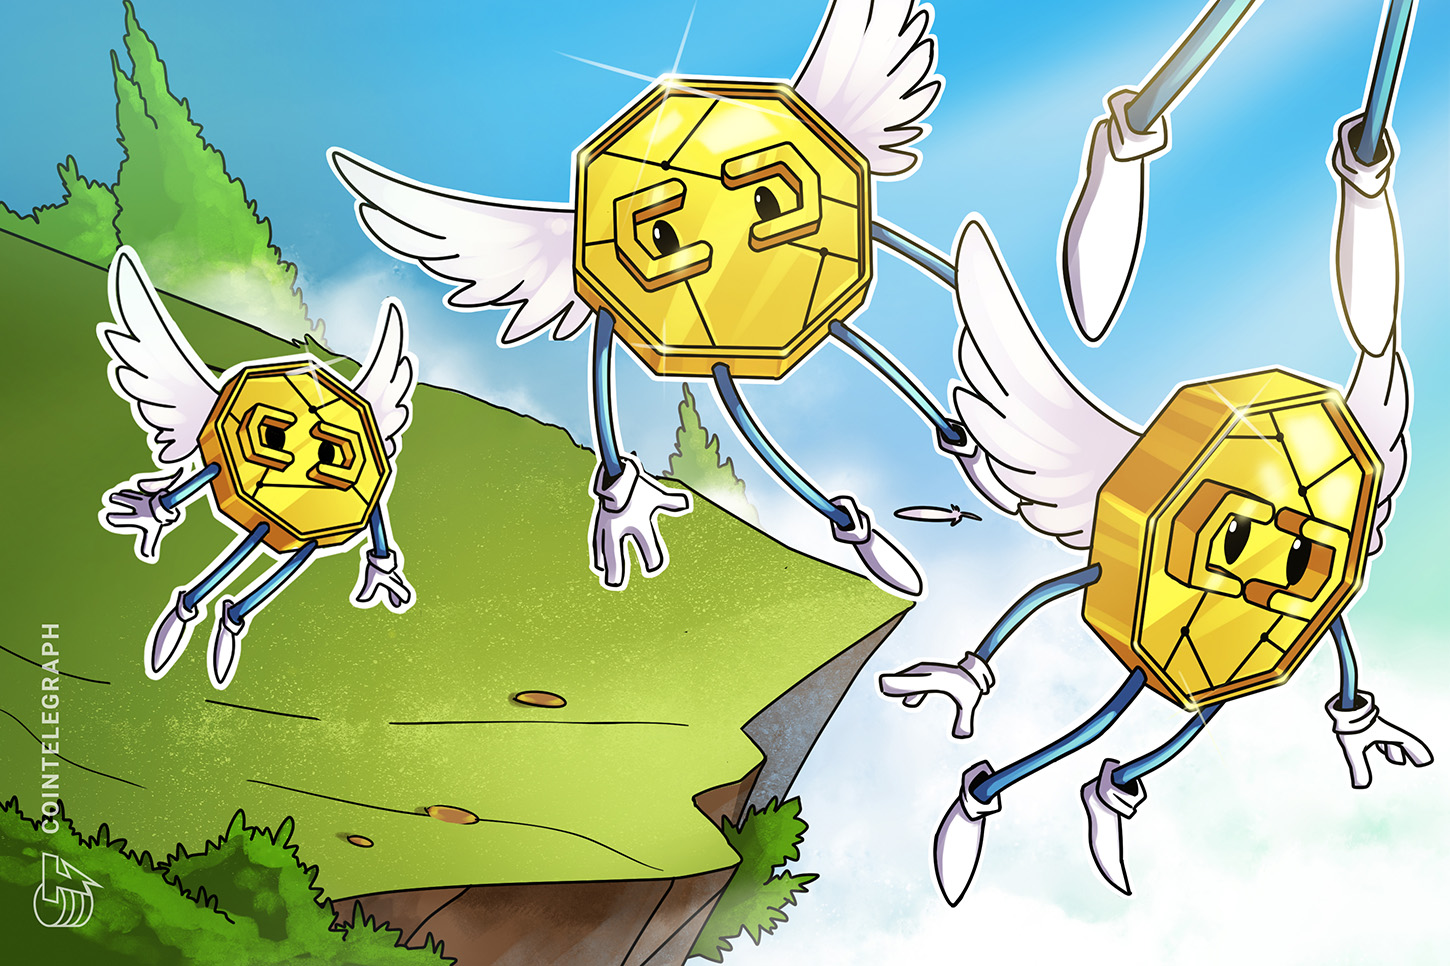 Altcoins soar while Bitcoin bulls gather strength to attack $48,000